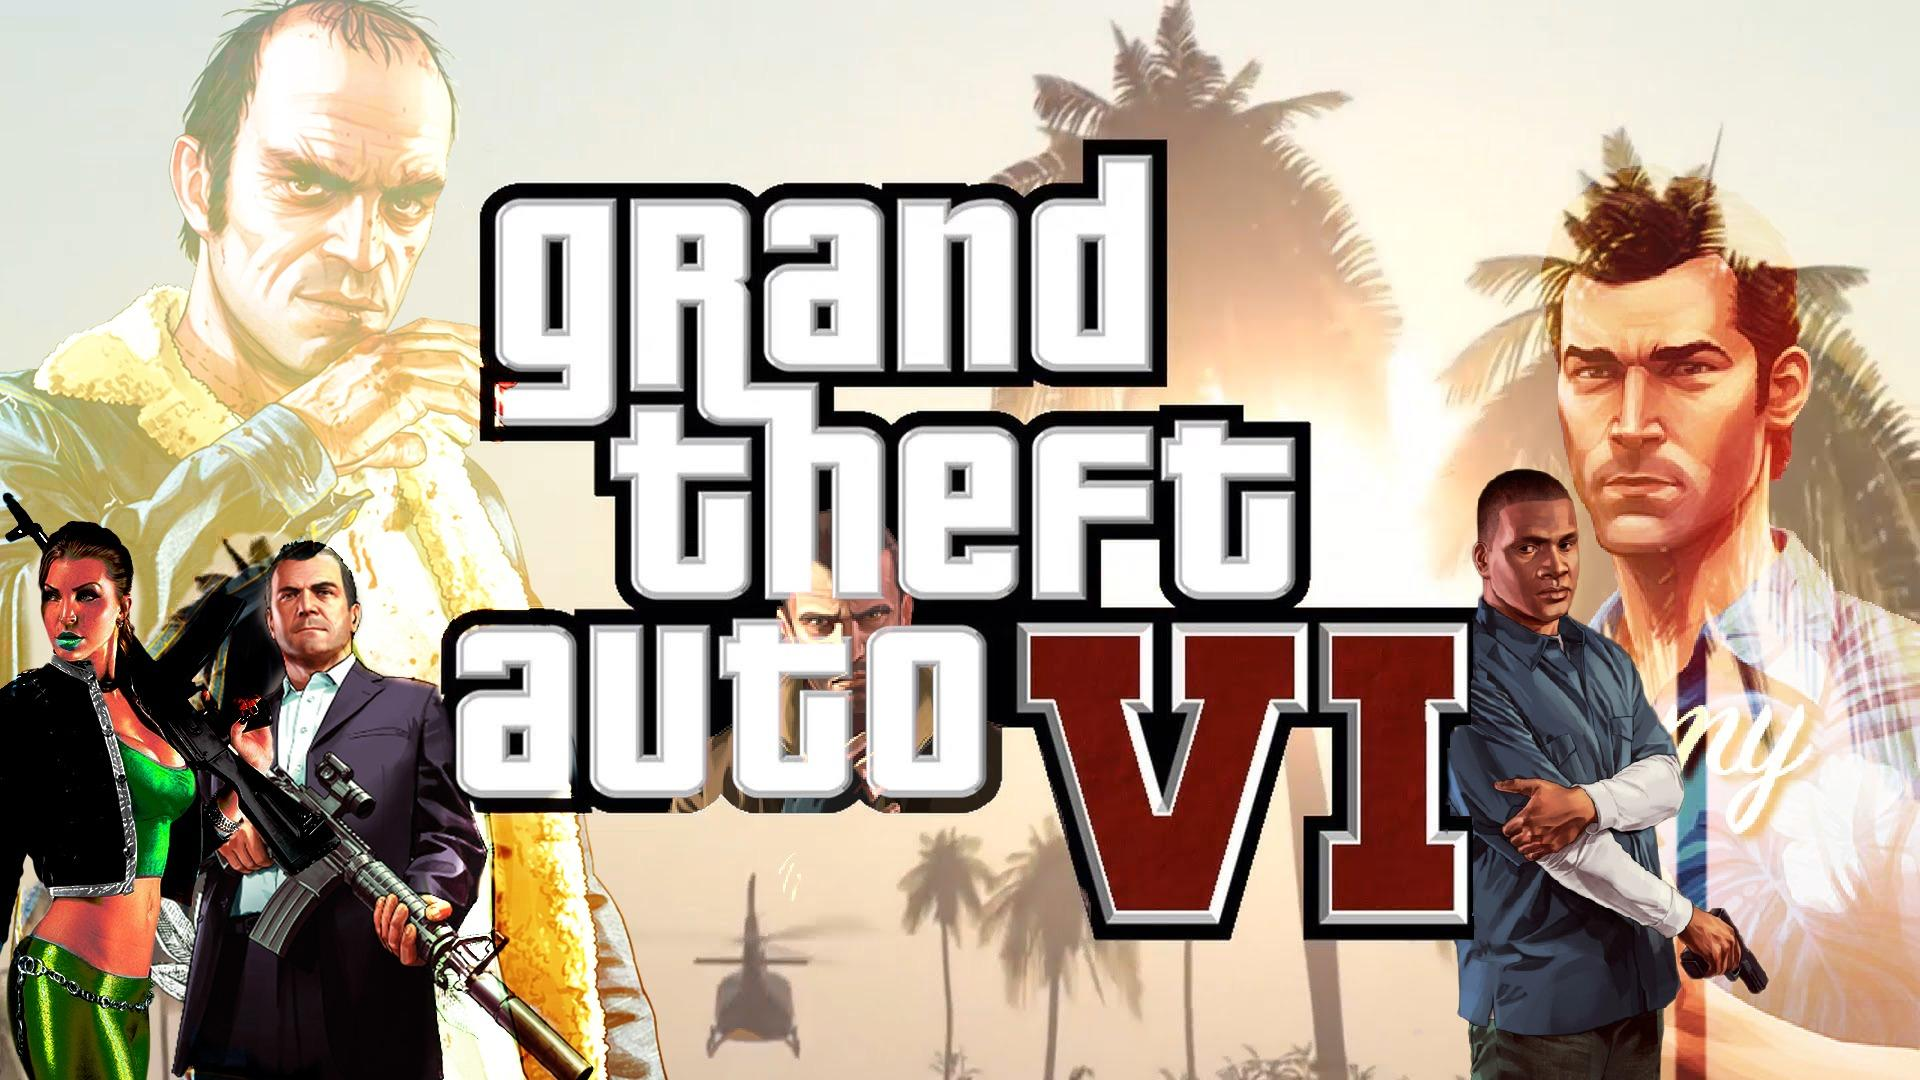 Gta 6 Cover: Grand Theft Auto 6 (GTA 6) Every Rumor And Leak In One Place